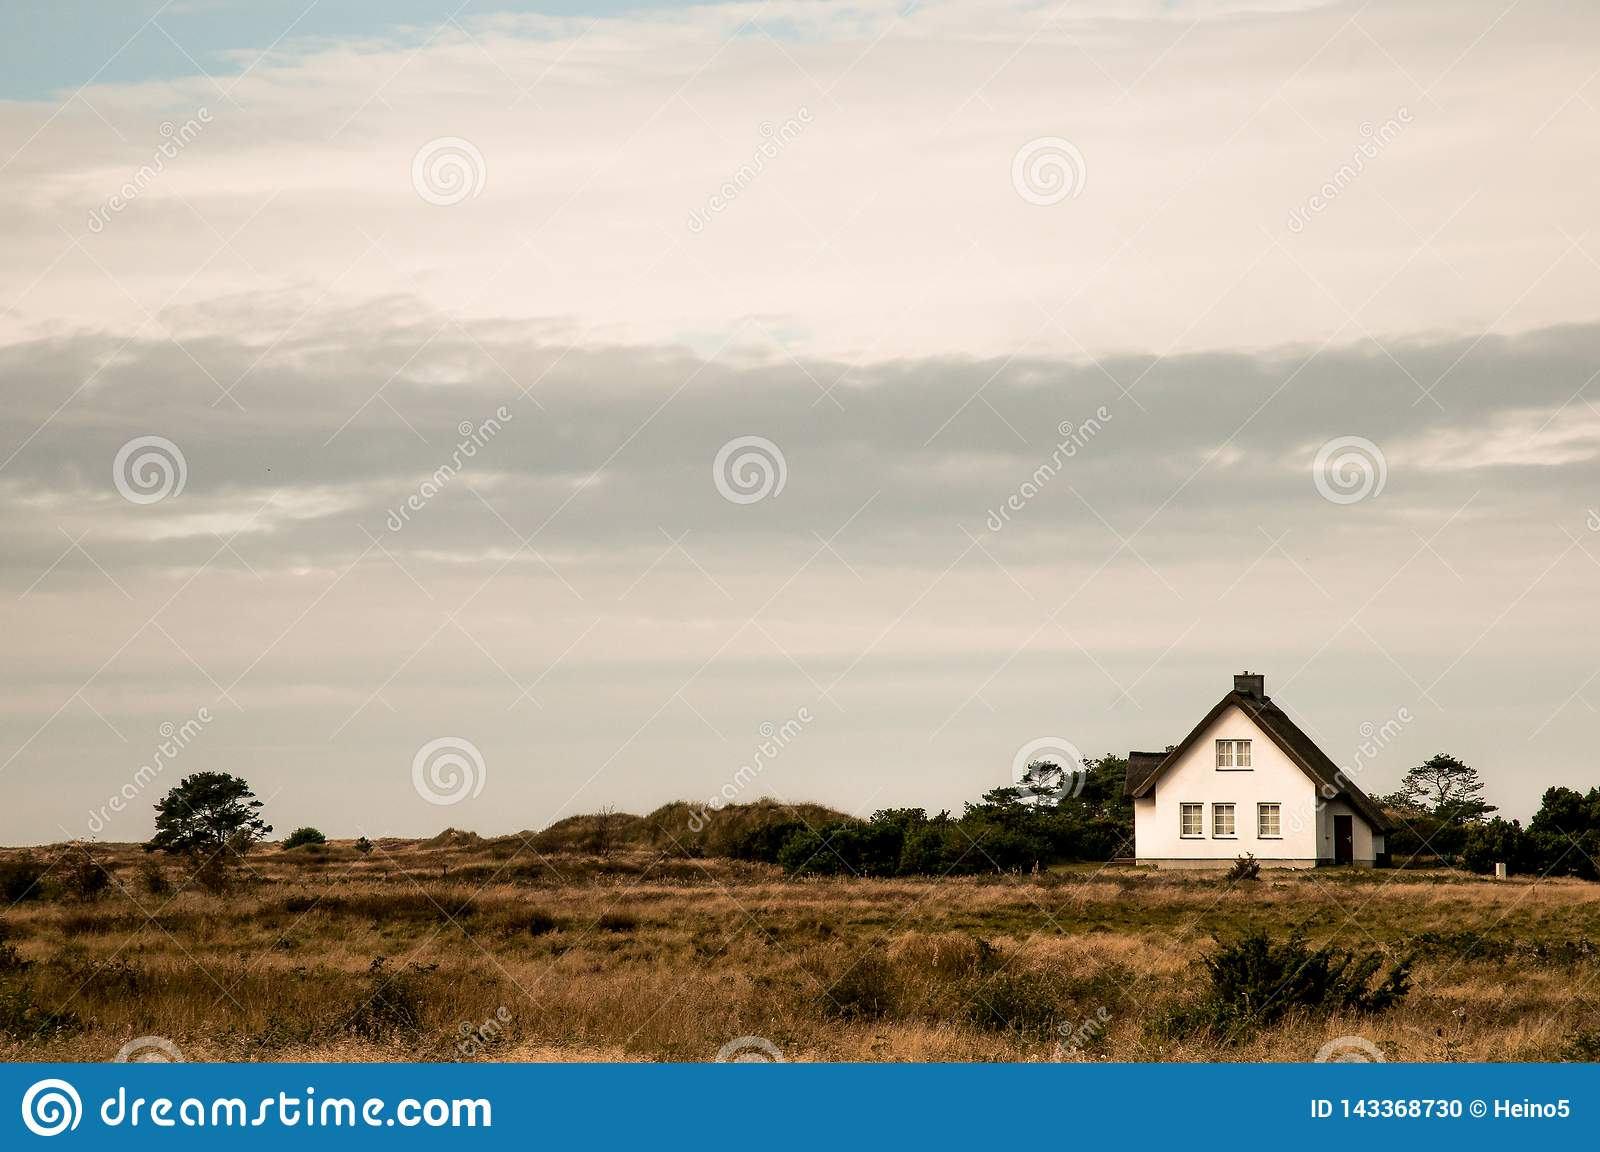 The White Hause in the dunes